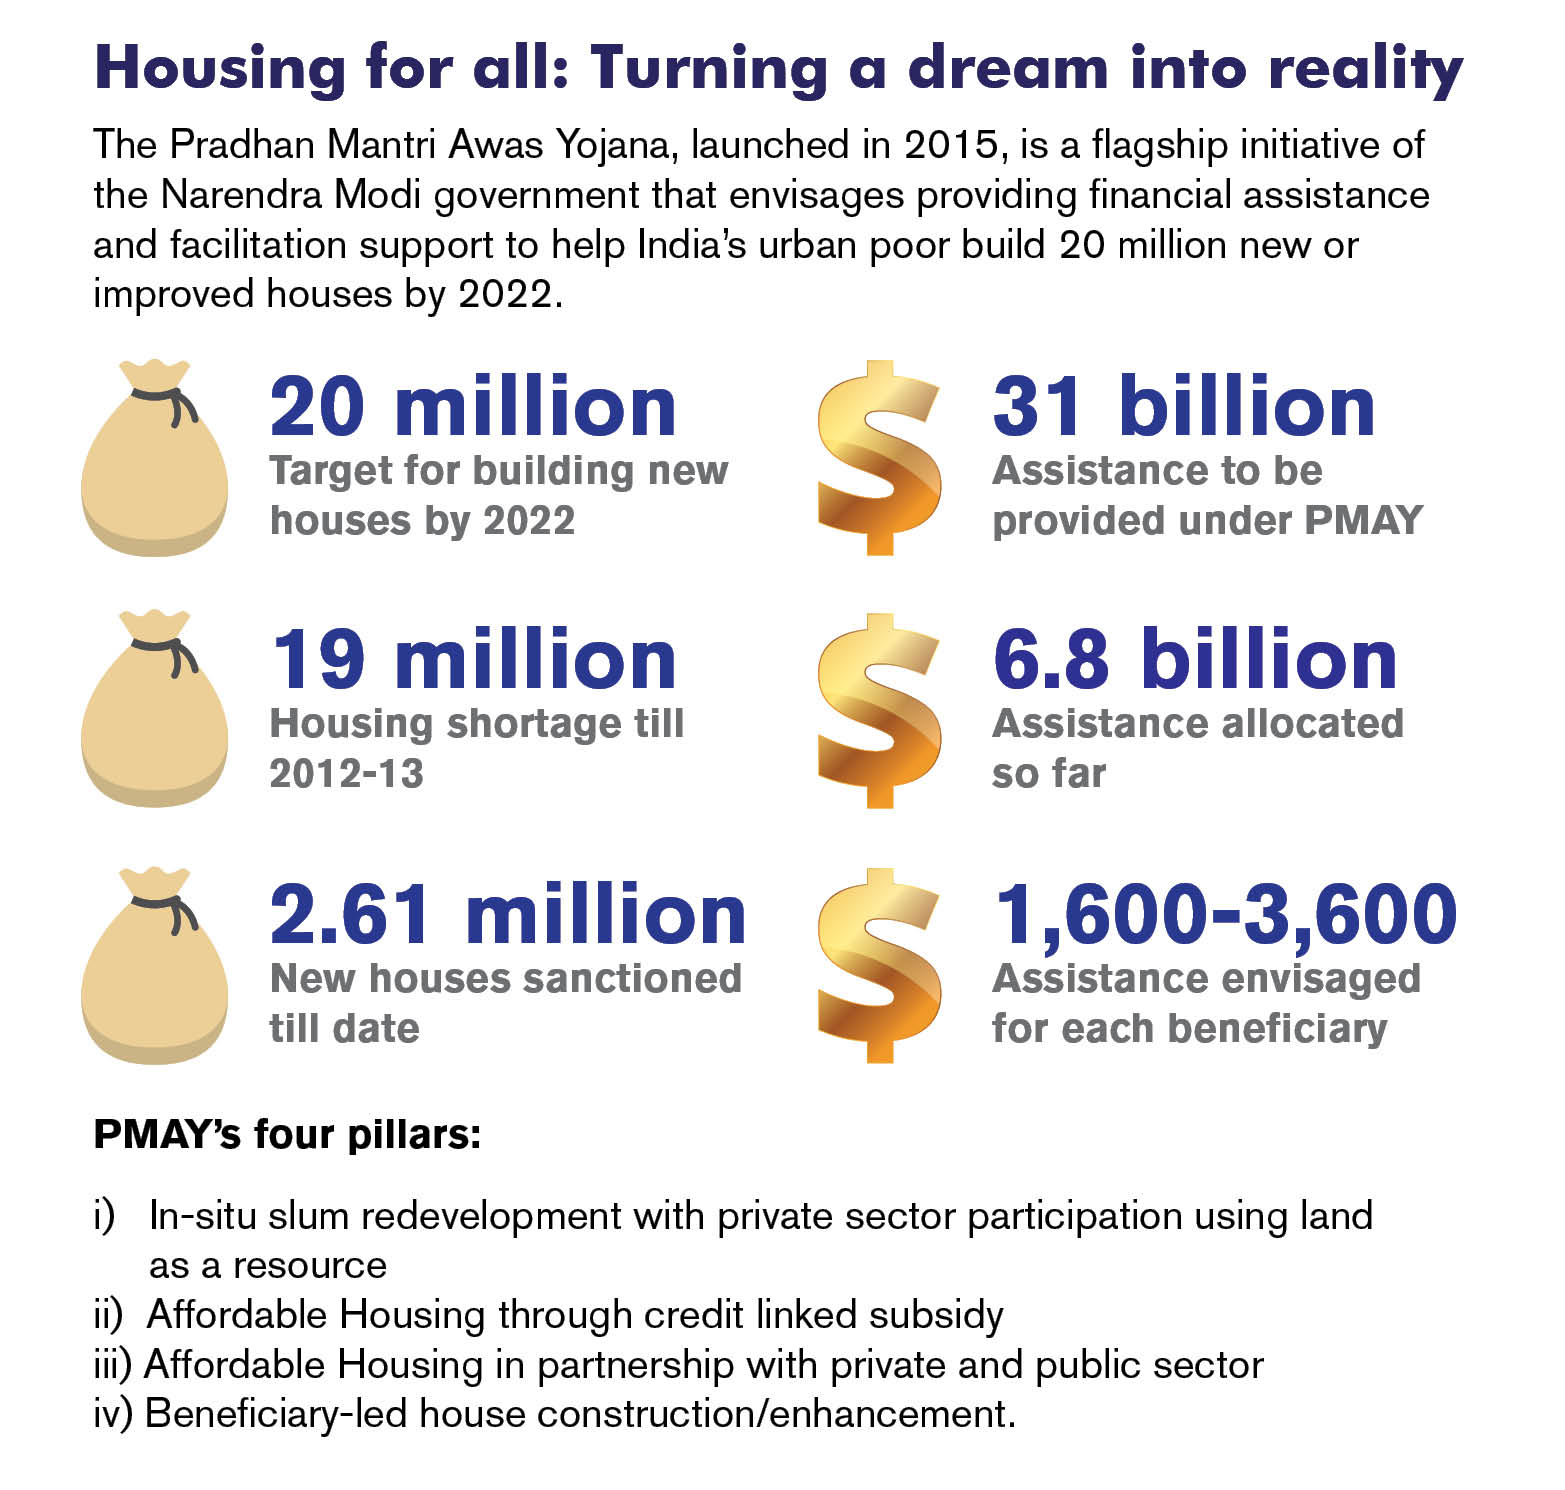 Housing for all Turning a dream into reality